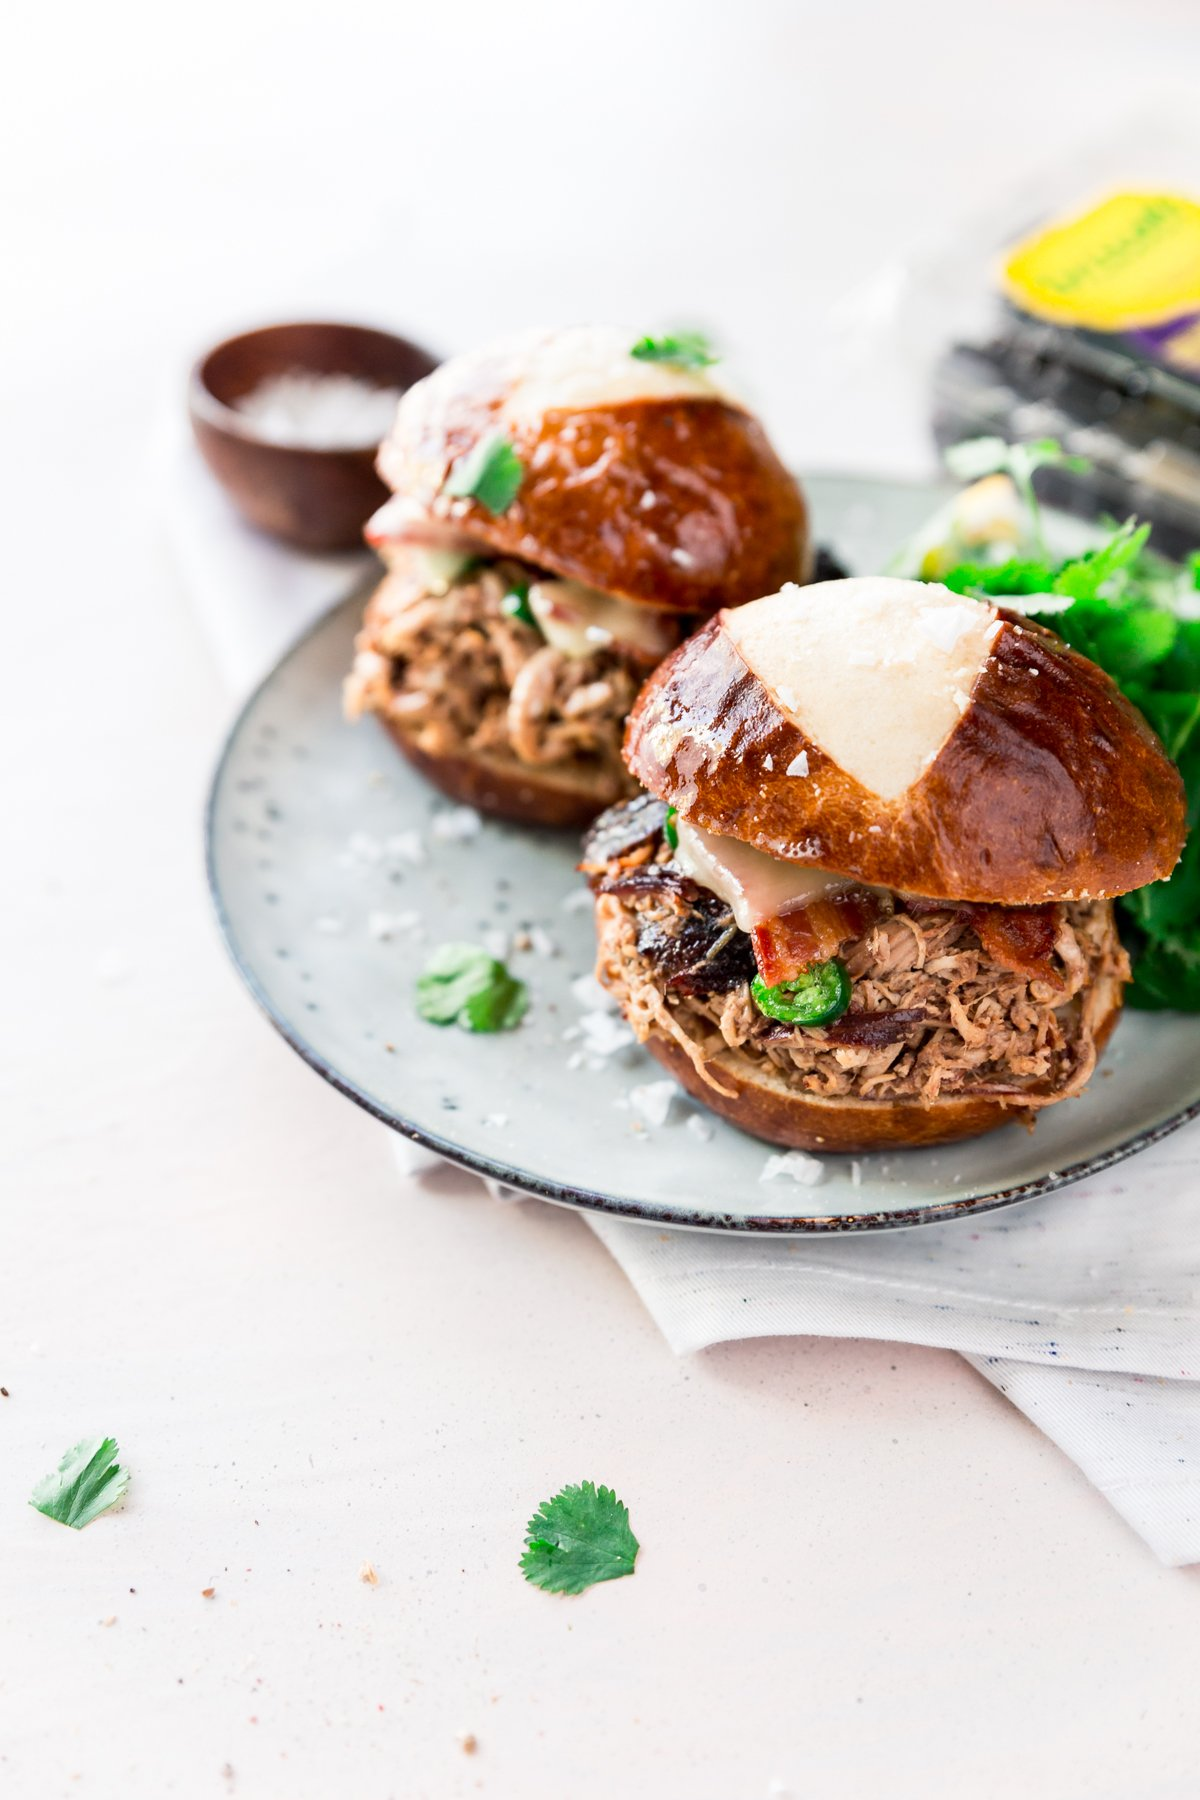 shredded chicken sliders with bacon and cheese on a small plate